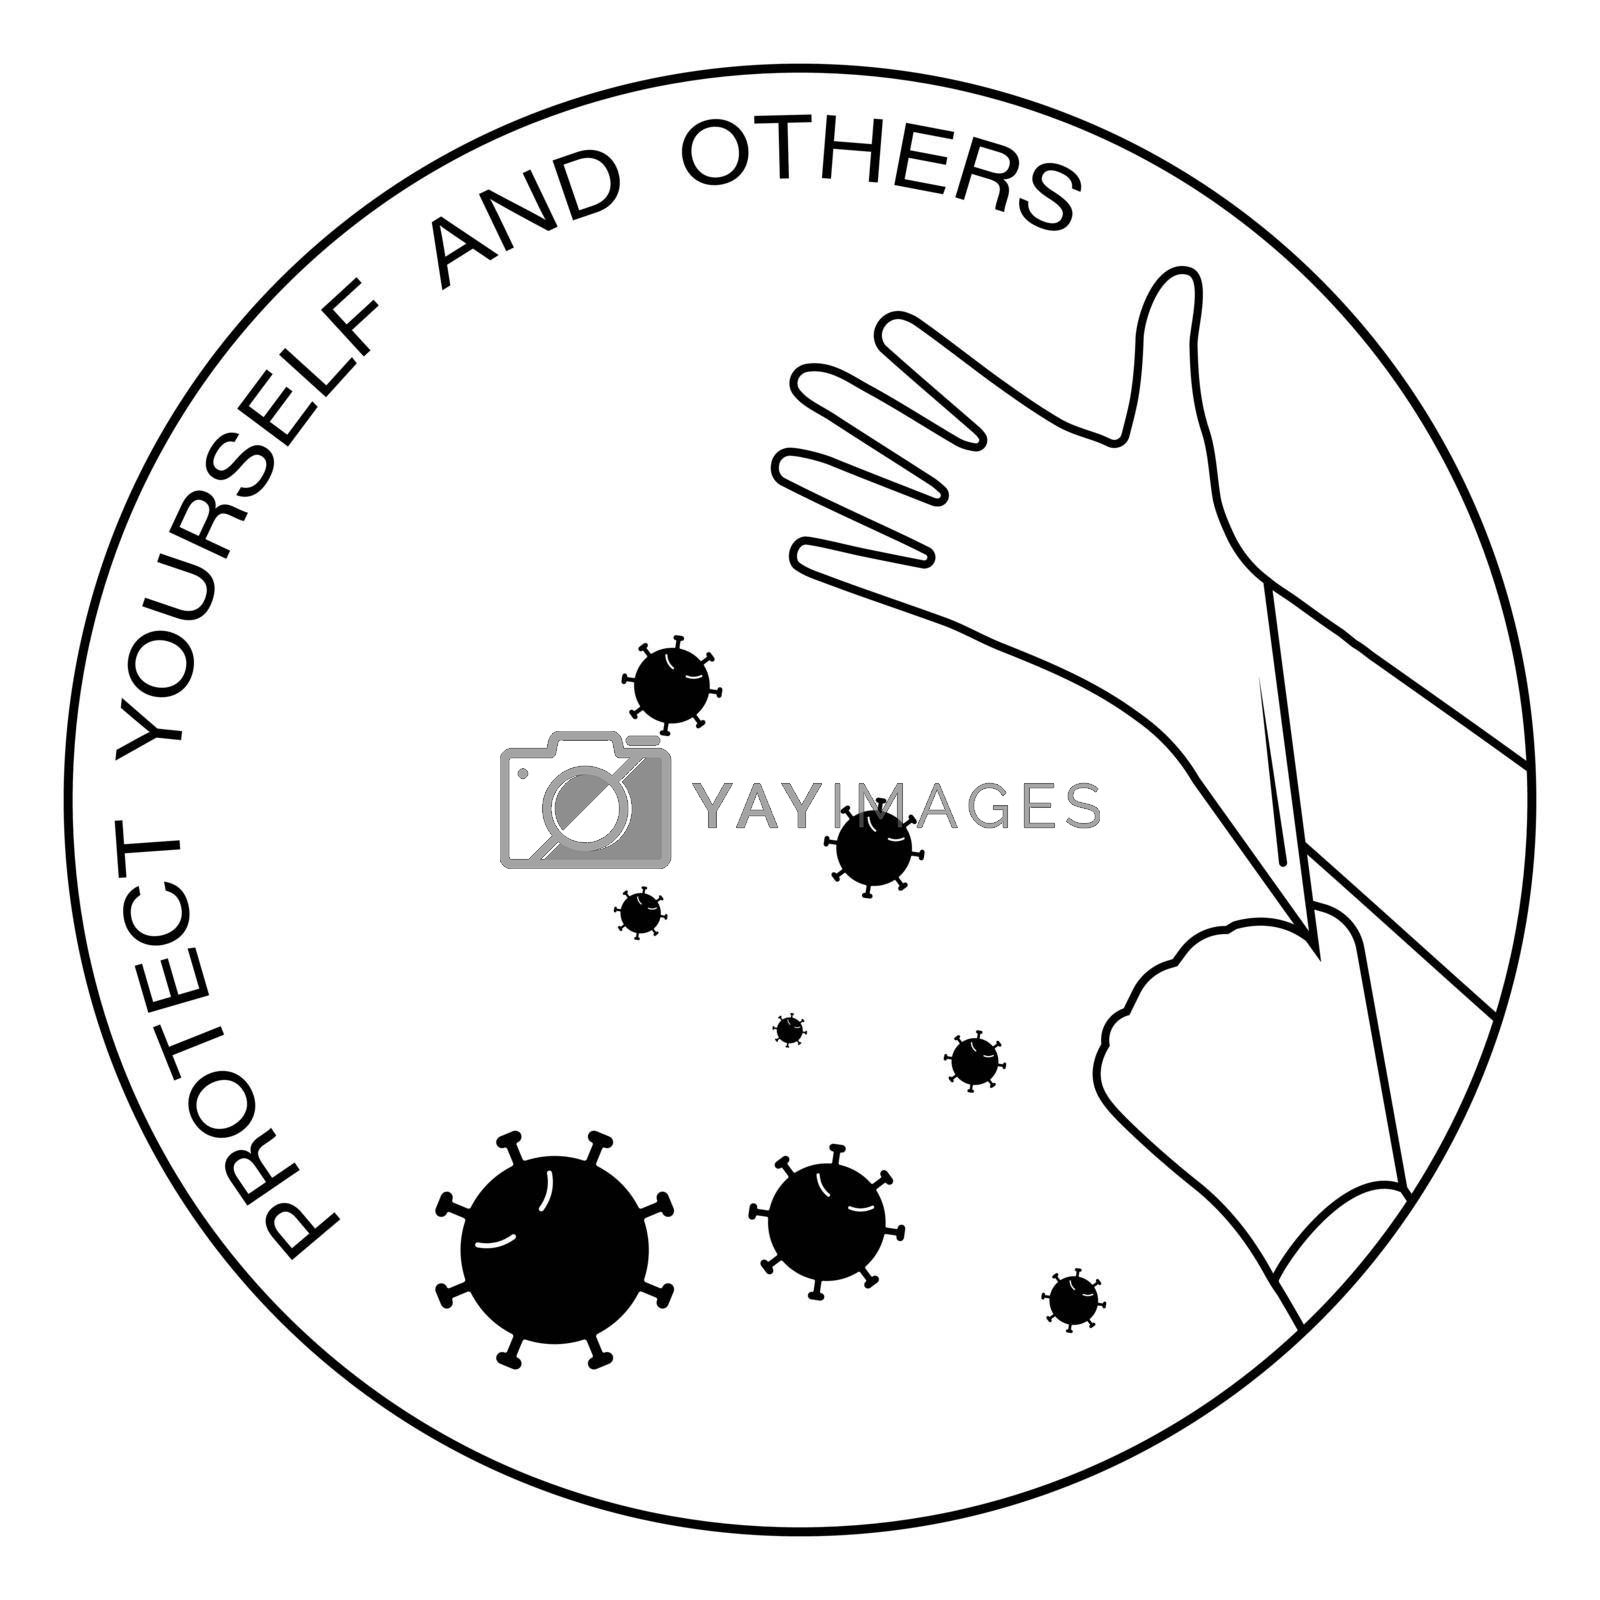 icon, logo. Rubber gloves are worn on the hands to protect against viruses and bacteria. Protecting yourself and others. Isolated vector